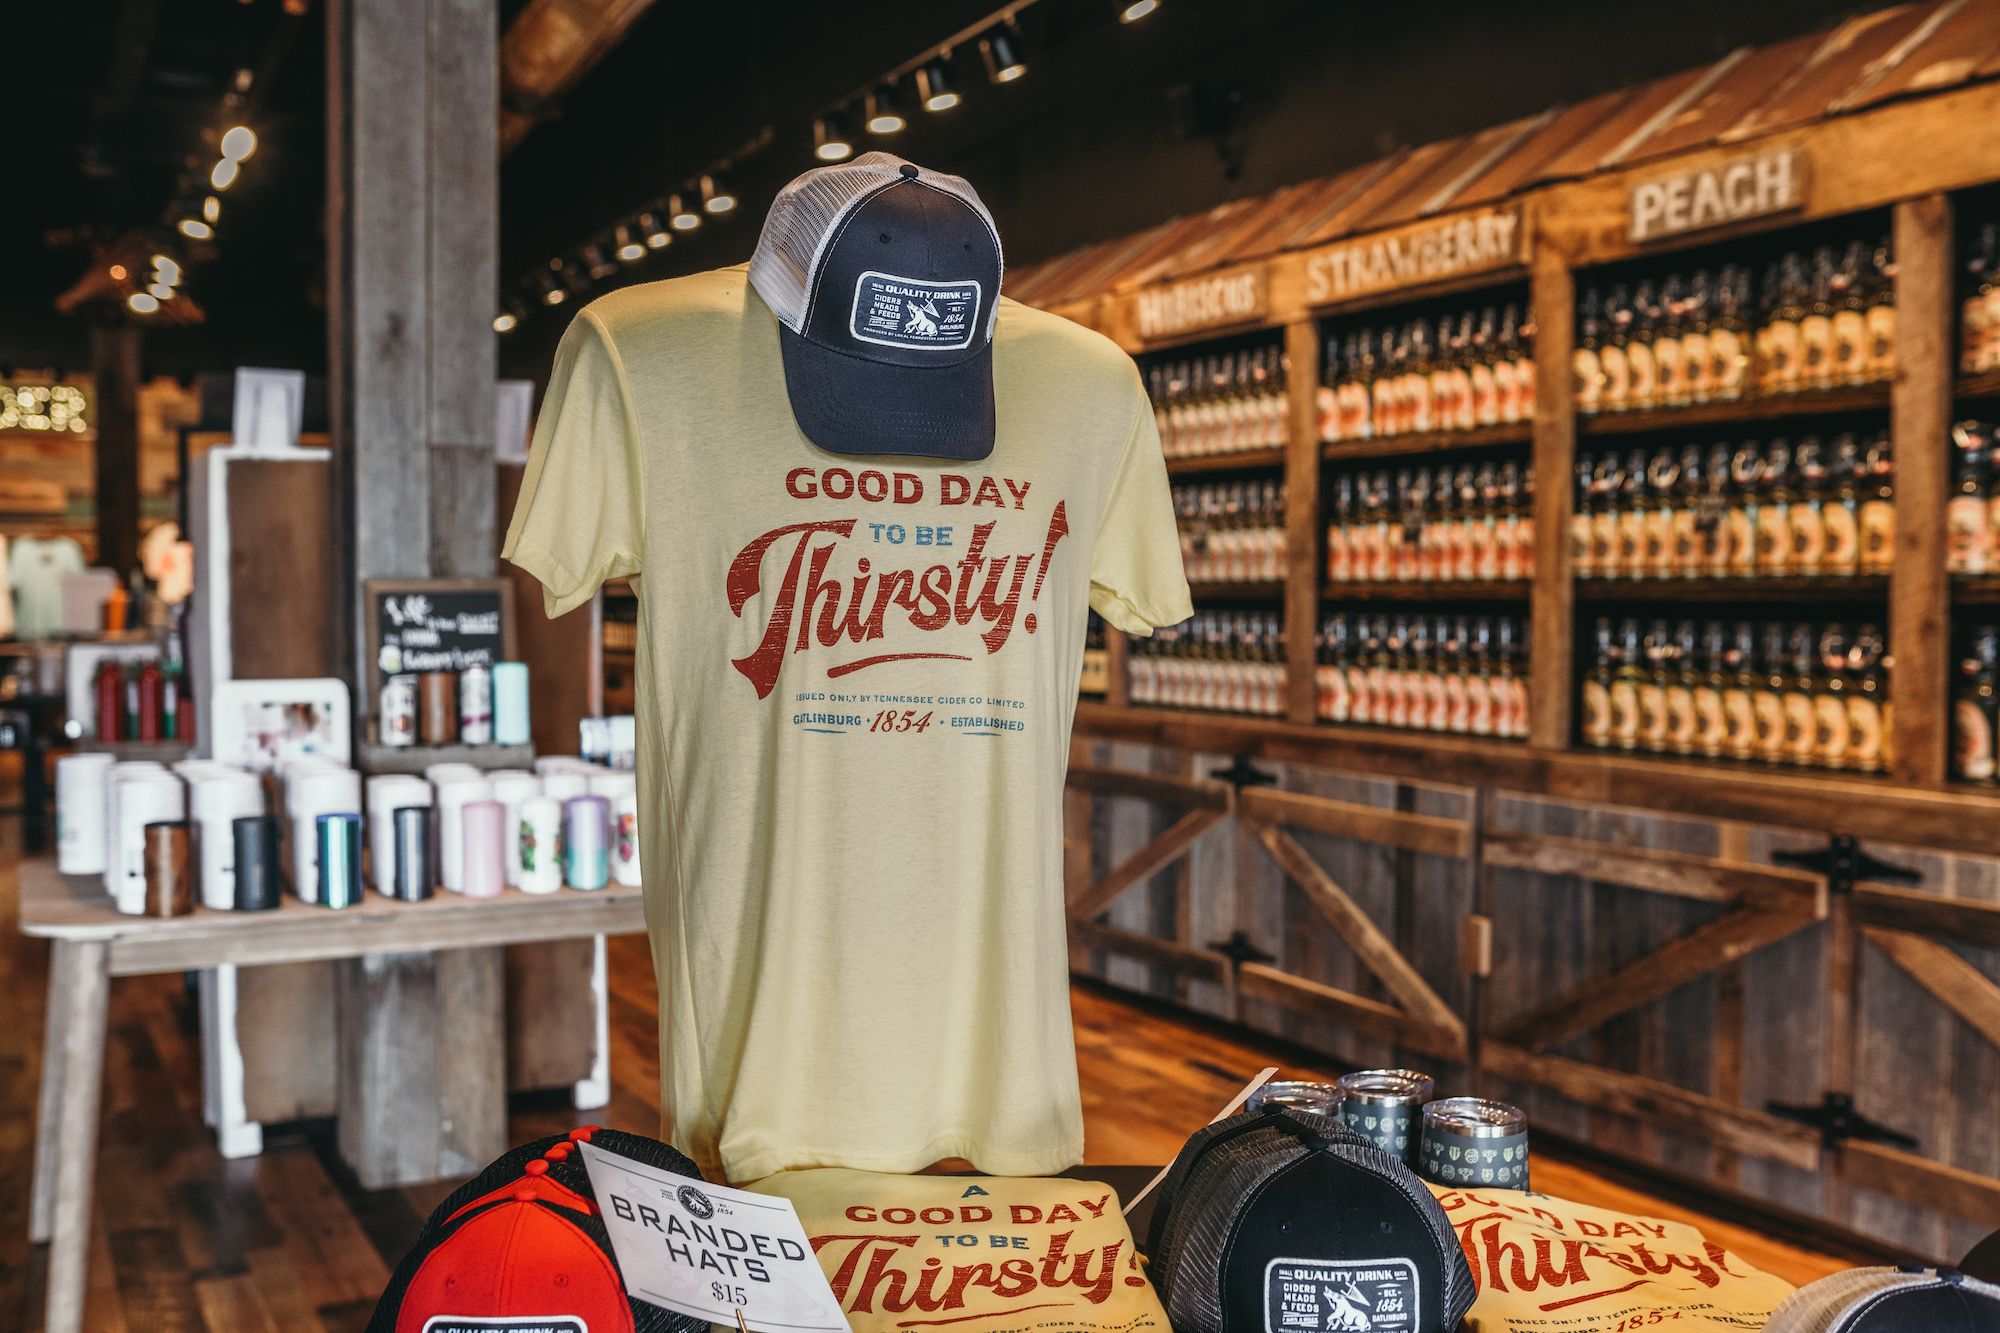 A shirt on display in Tennessee Cider Company's Tanger Outlet Location - Tennessee Cider Company offers many products other than cider for your enjoyment in Gatlinburg and Sevierville Tennessee